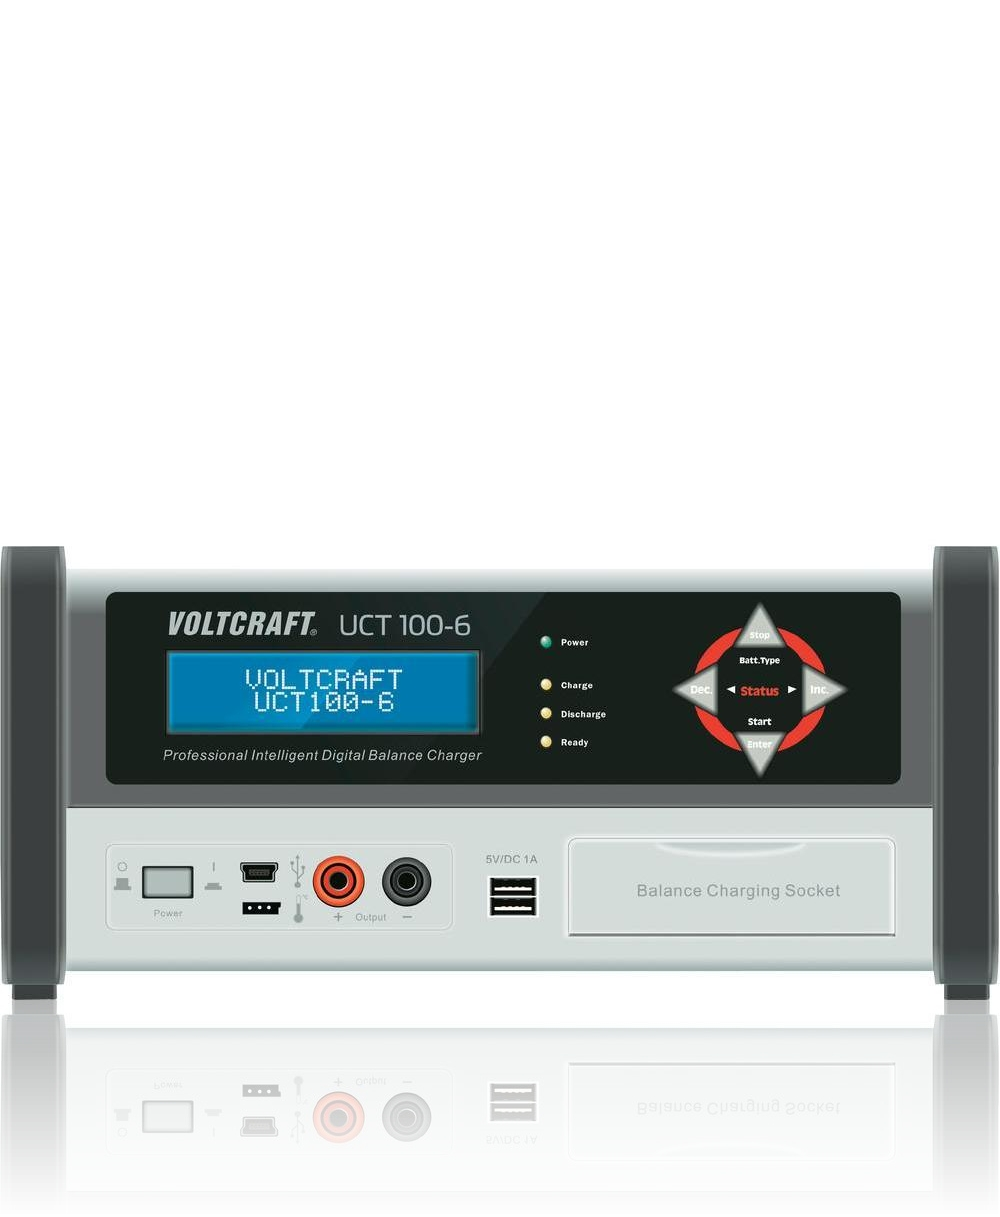 voltcraft uct 100-6 software